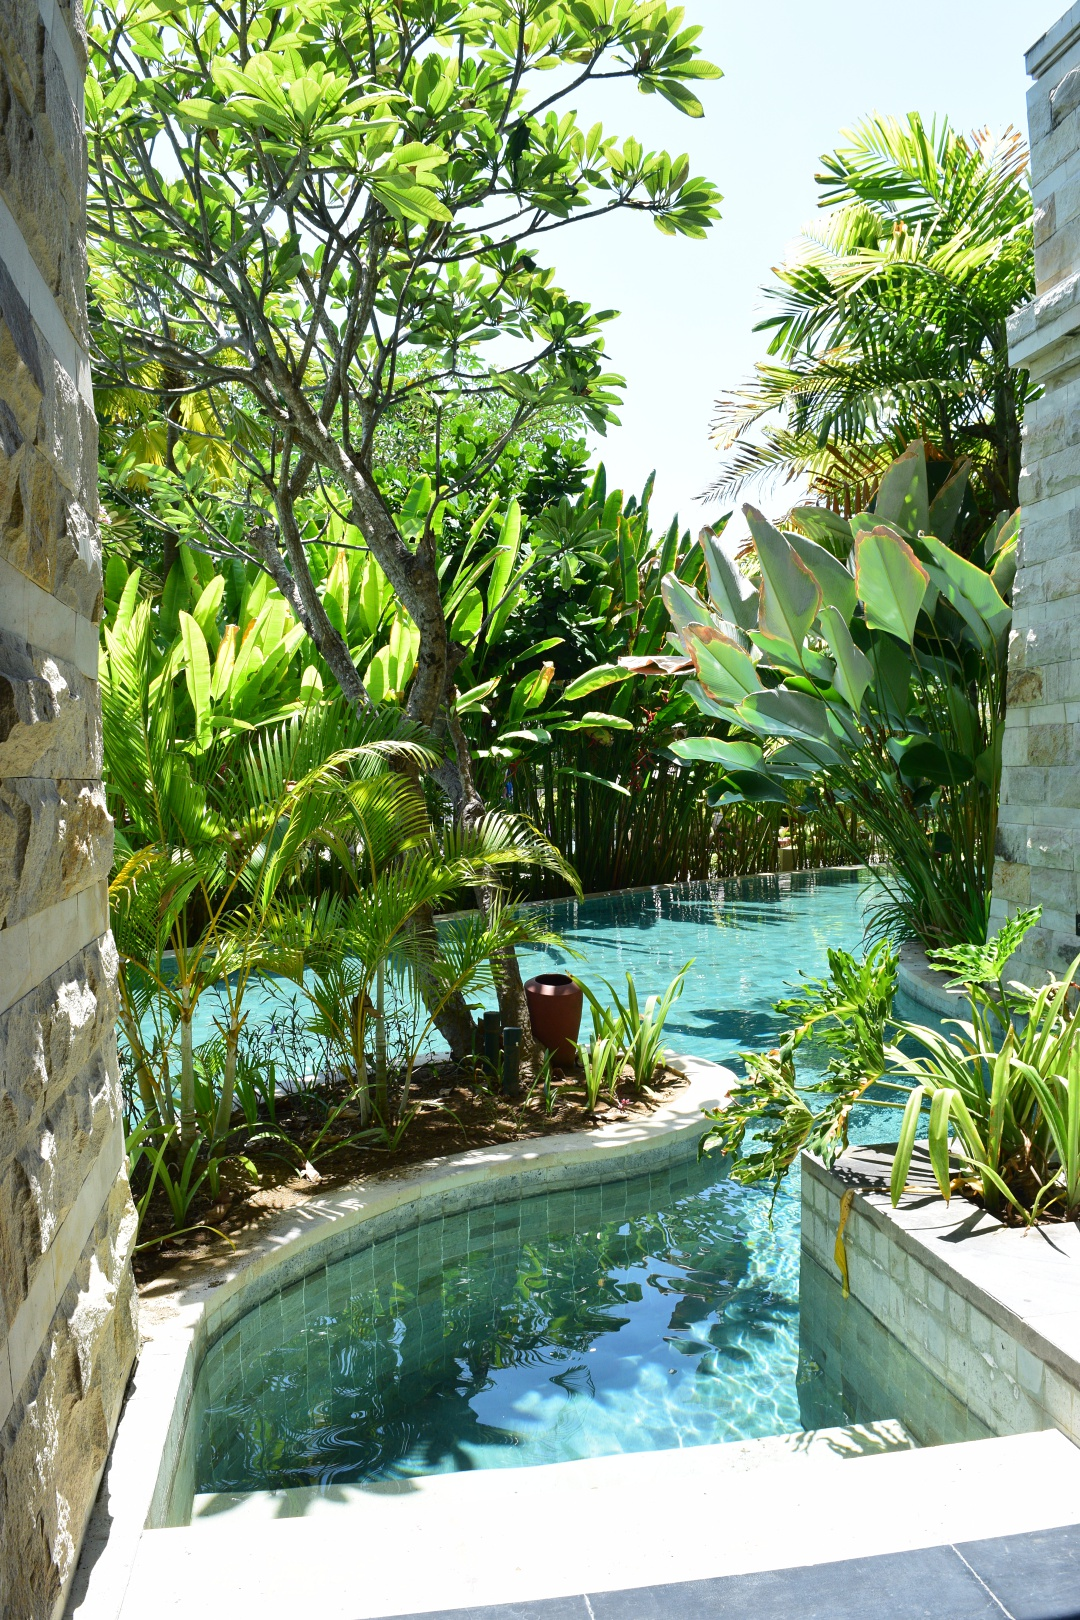 Sofitel Bali Nusa Dua Beach Resort Luxury Room Pool Access | joanne-khoo.com